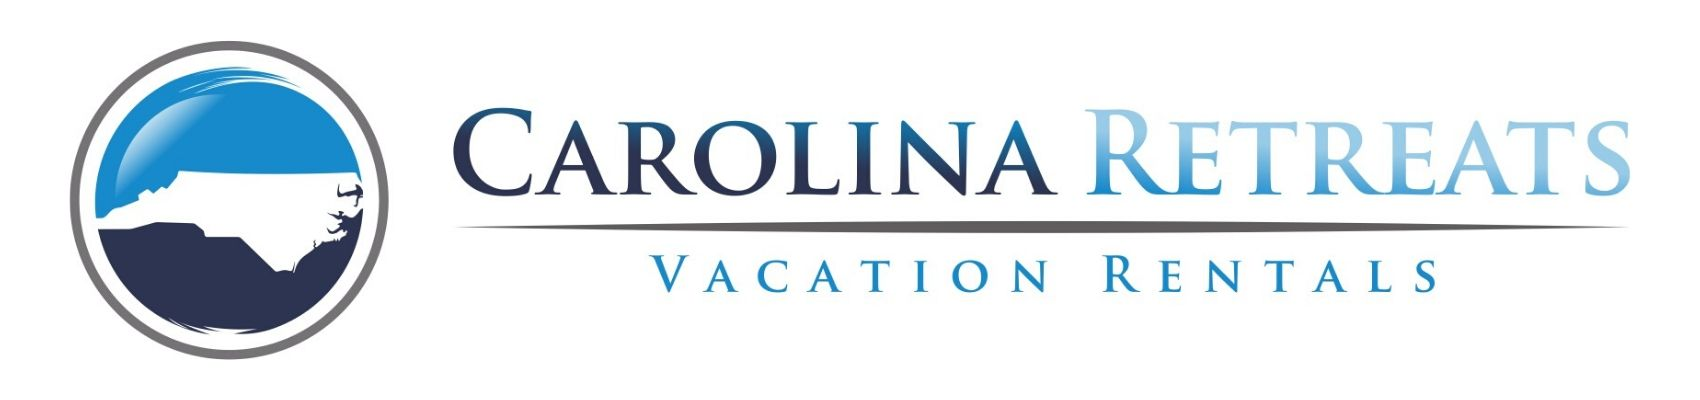 Carolinaretreats logo3 101620123447